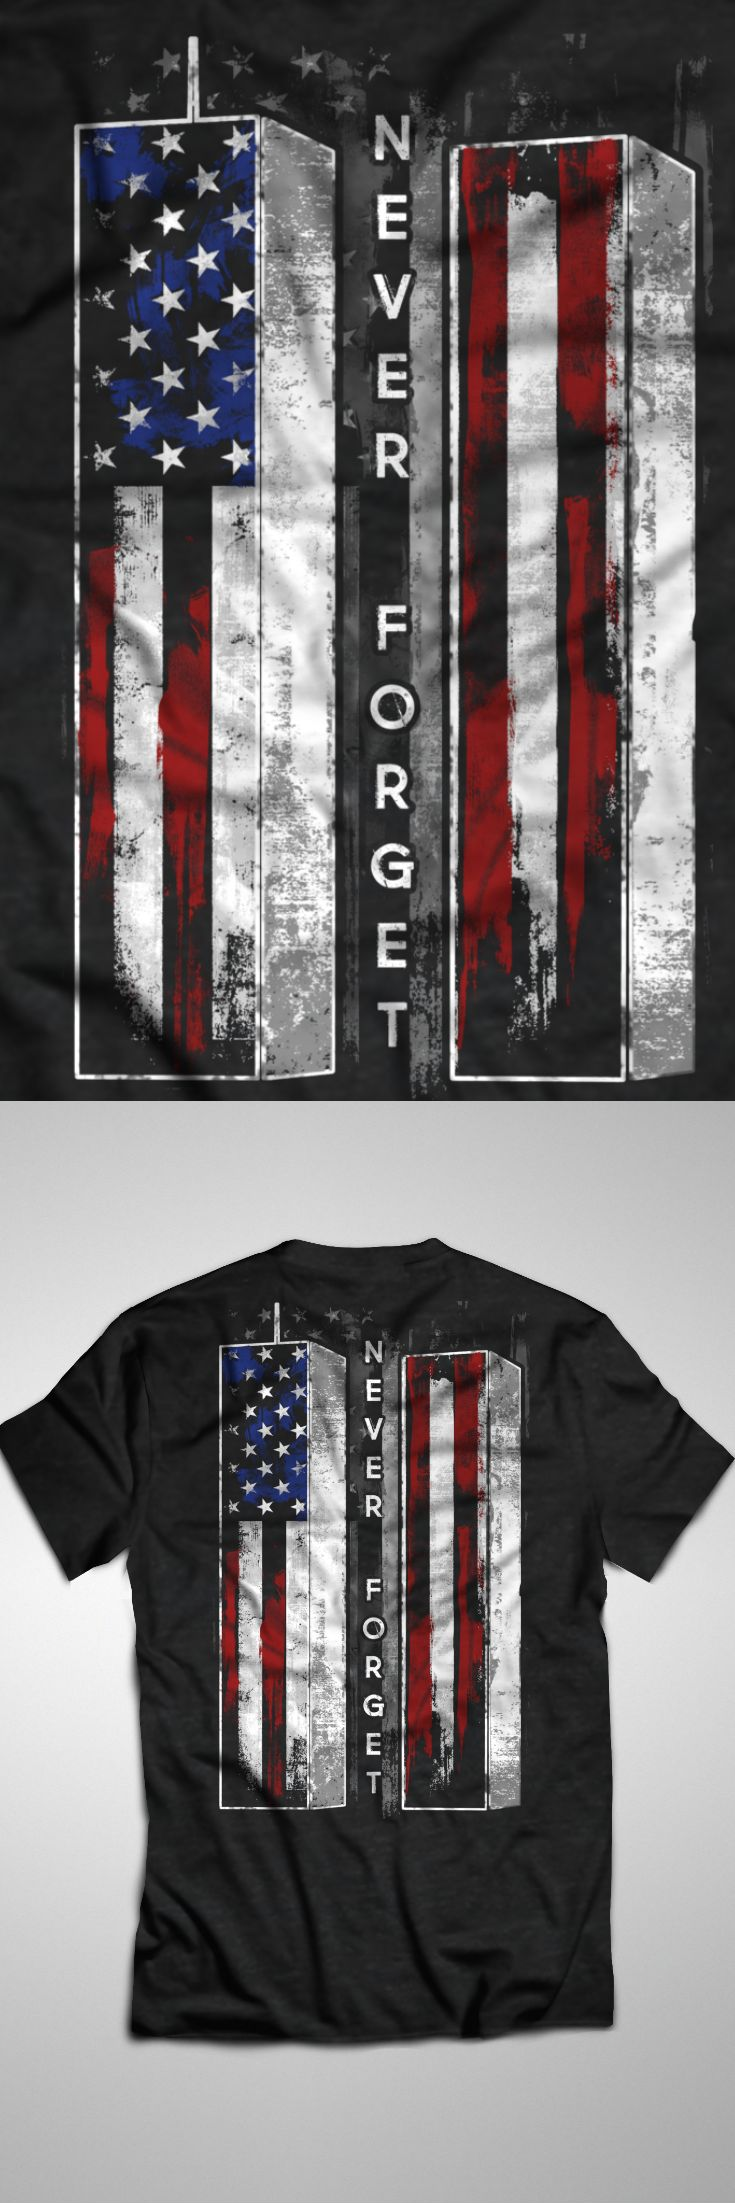 Honoring the 15th Anniversary of September 11th - Limited Edition. Only 2 days left for FREE SHIPPING, grab yours or gift it to a friend. You will both love it!